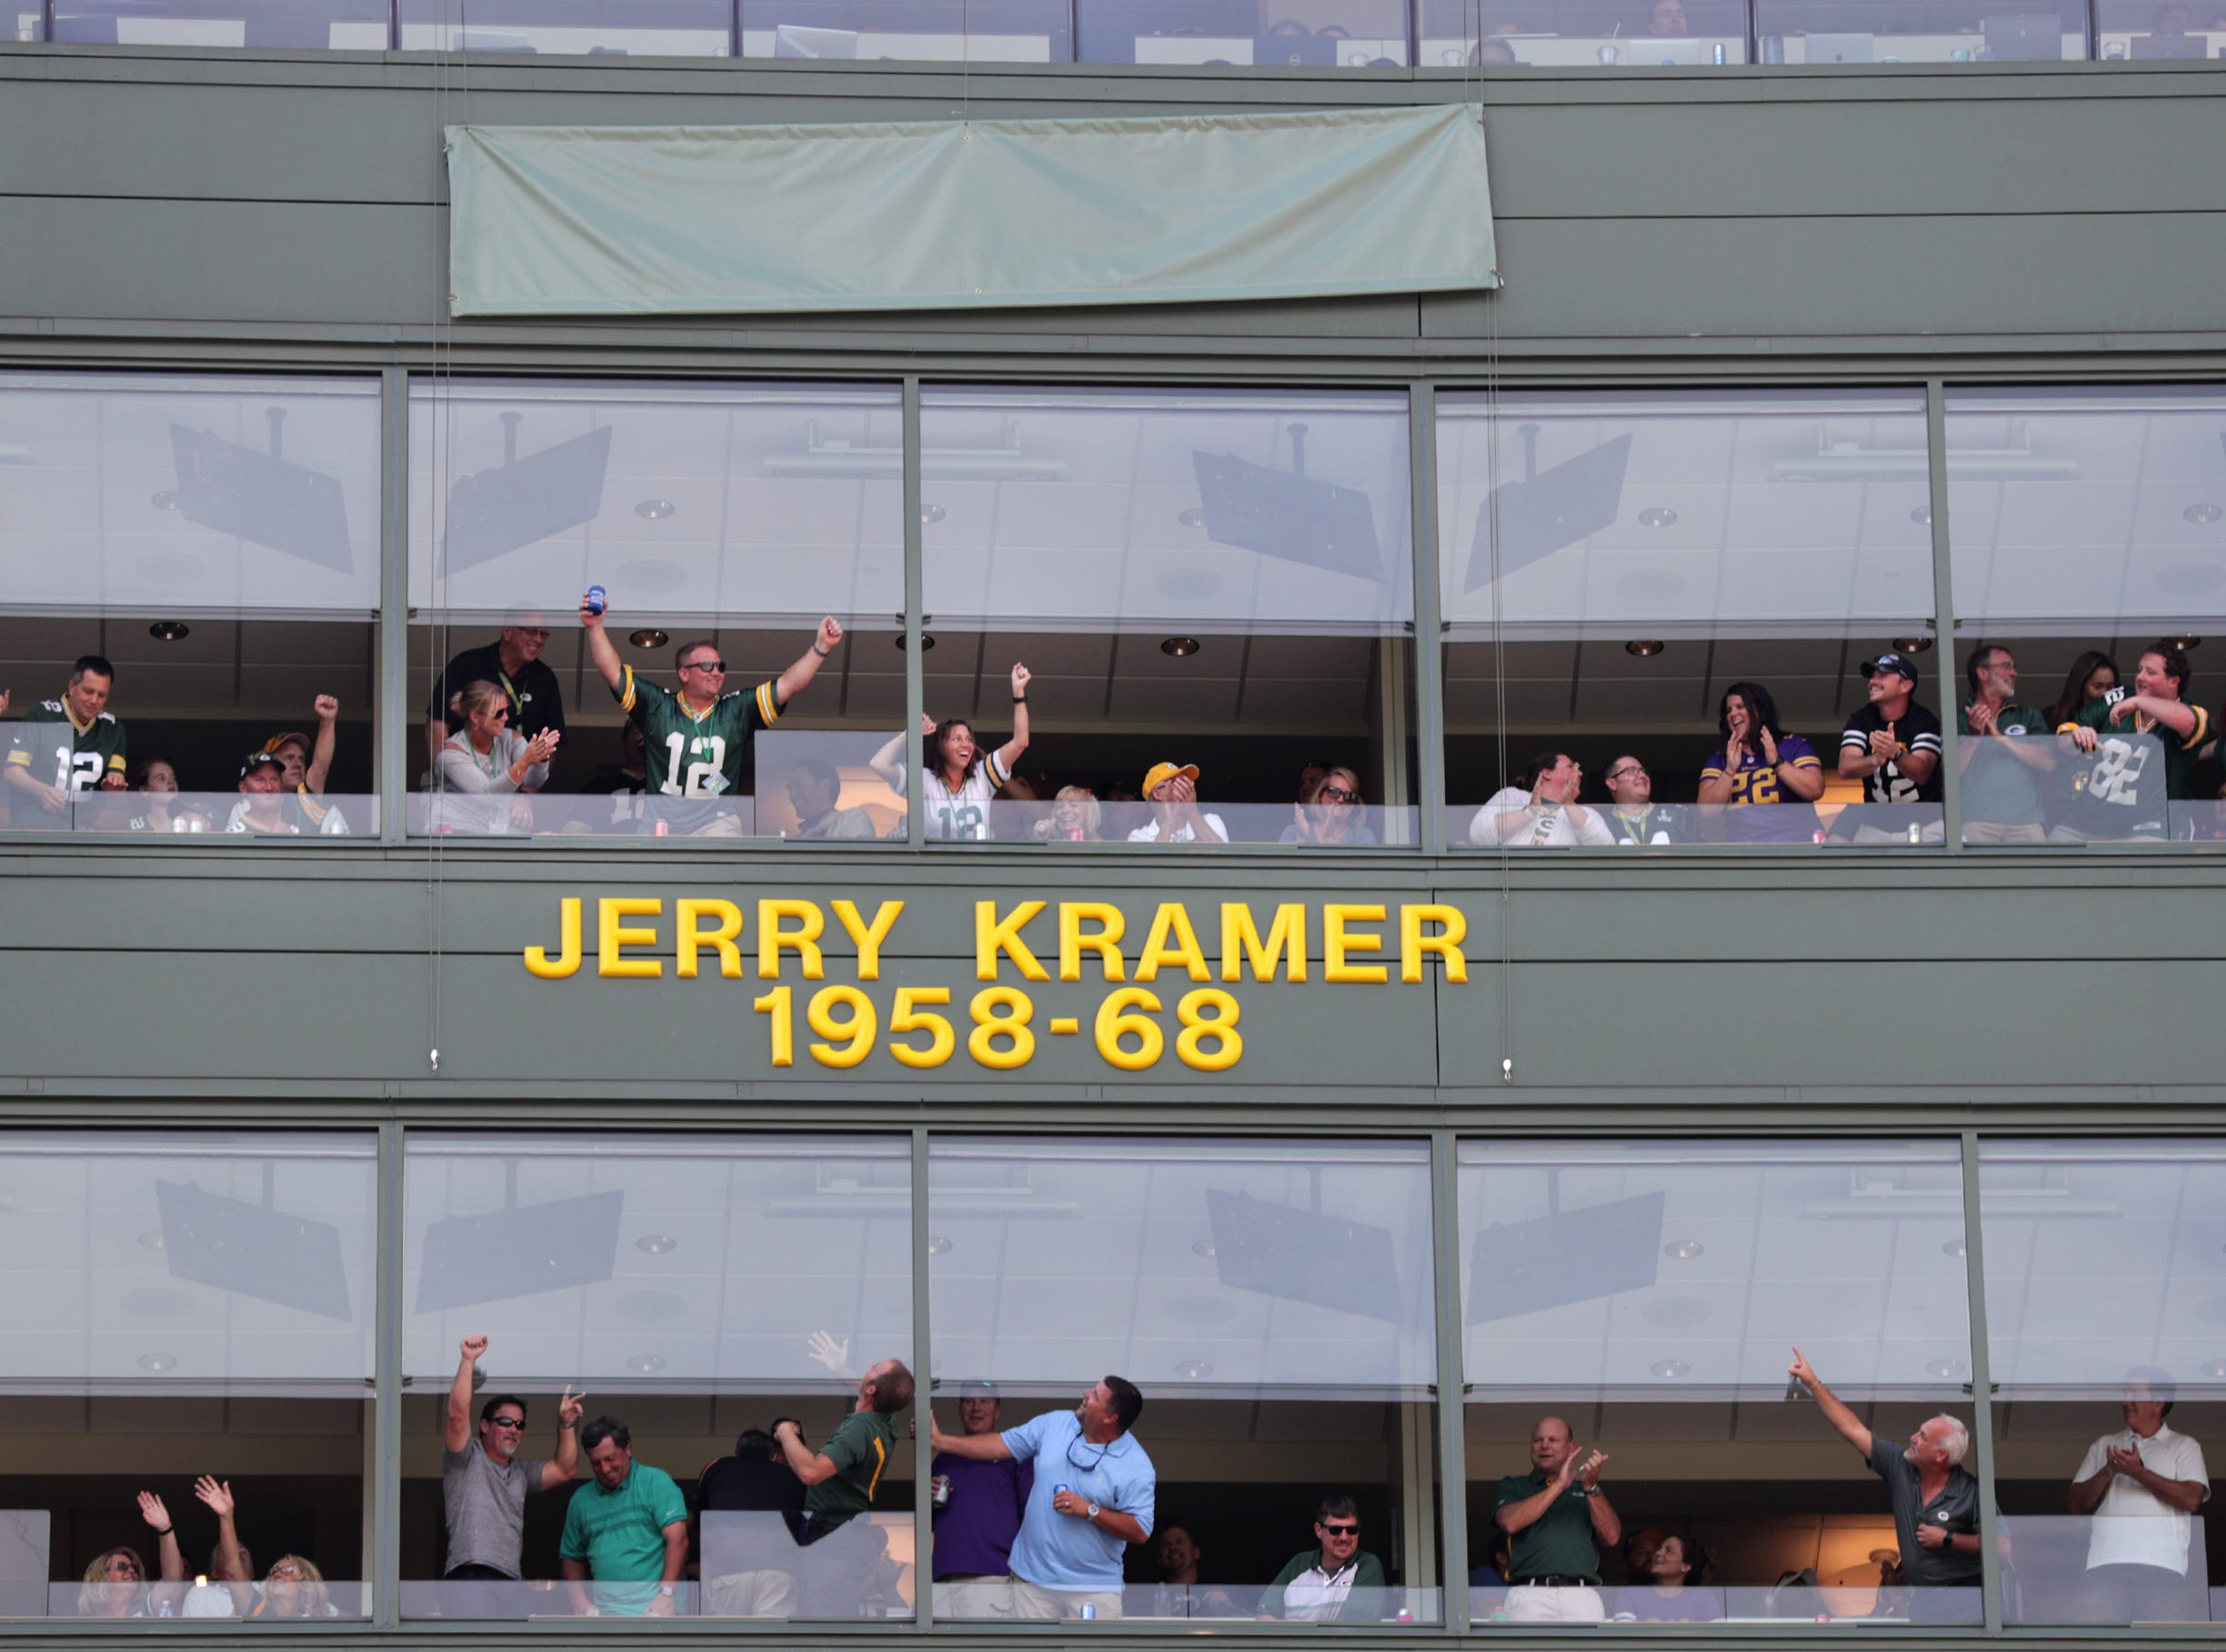 NFL Hall of Famer Jerrty Kramer Ring of Honor ceremony at halftime of Green Bay Packers against the Minnesota Vikings football game on Sunday, September 16, 2018, at Lambeau Field in Green Bay, Wis. Wm. Glasheen/USA TODAY NETWORK-Wisconsin.